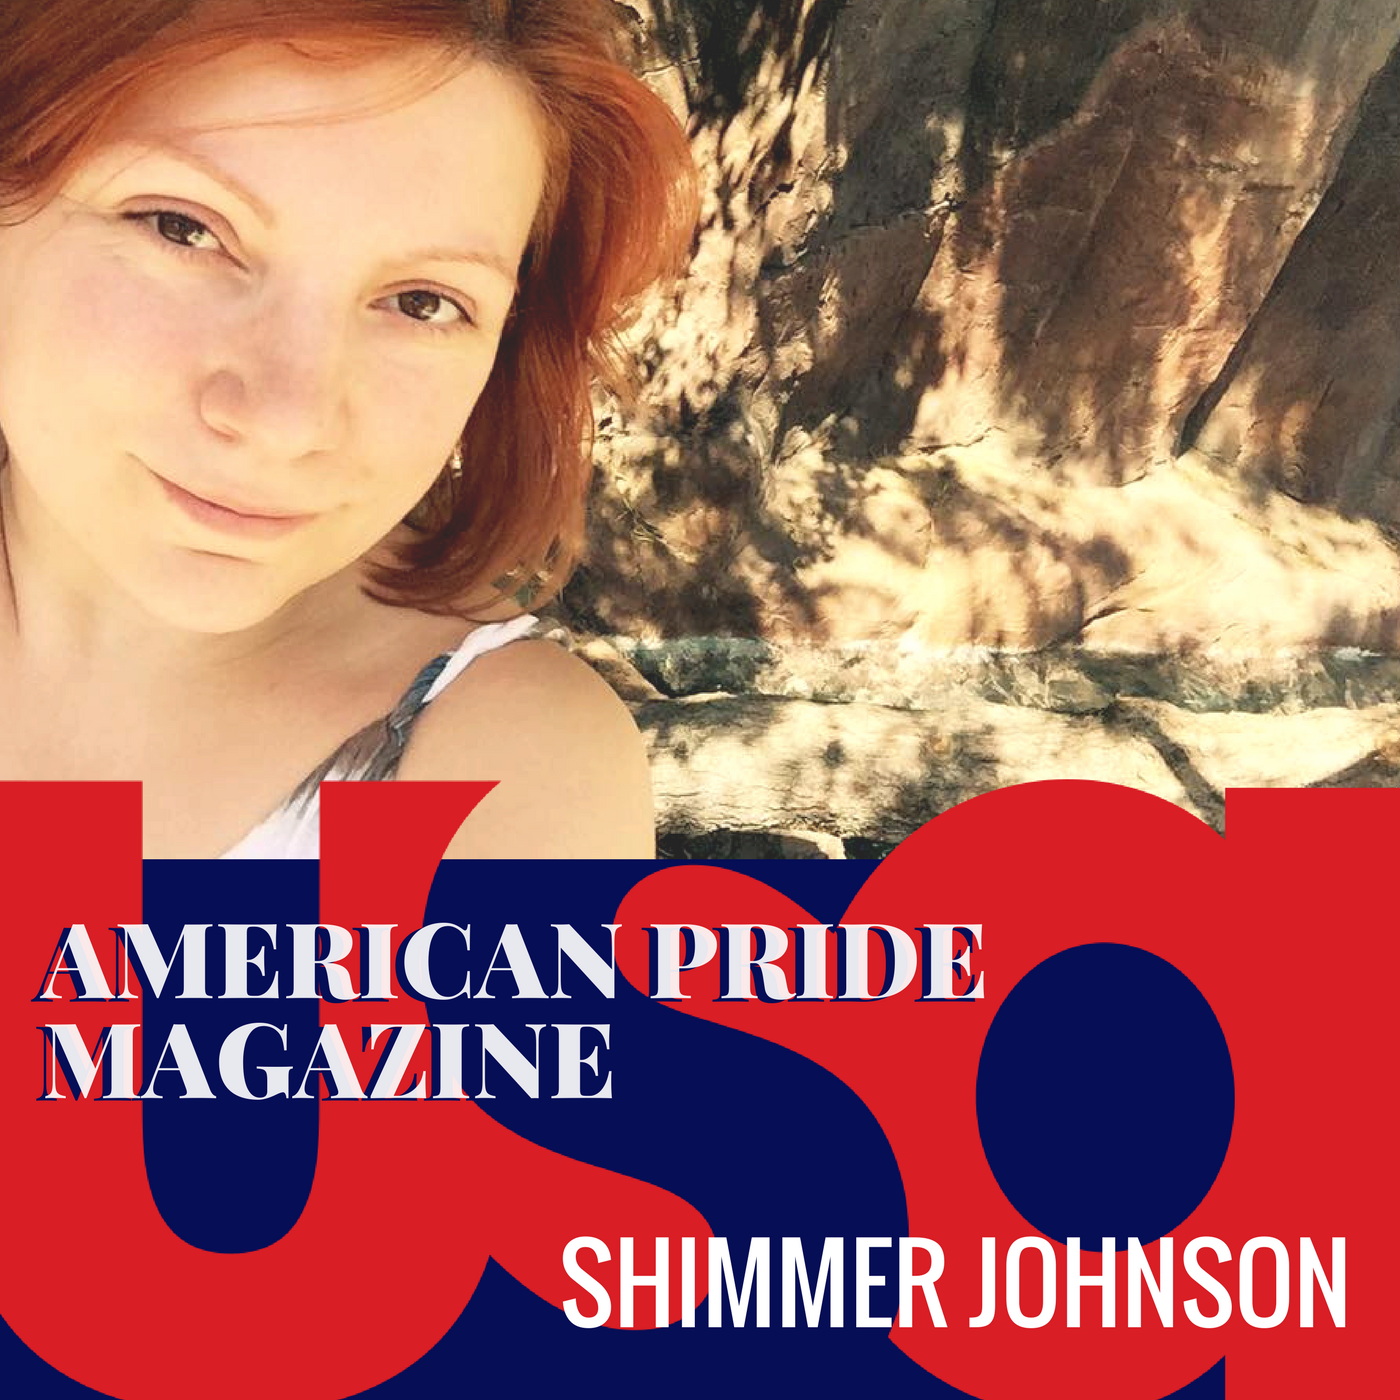 Shimmer Johnson Releases a New Album about Motherhood and dealing with simple truths